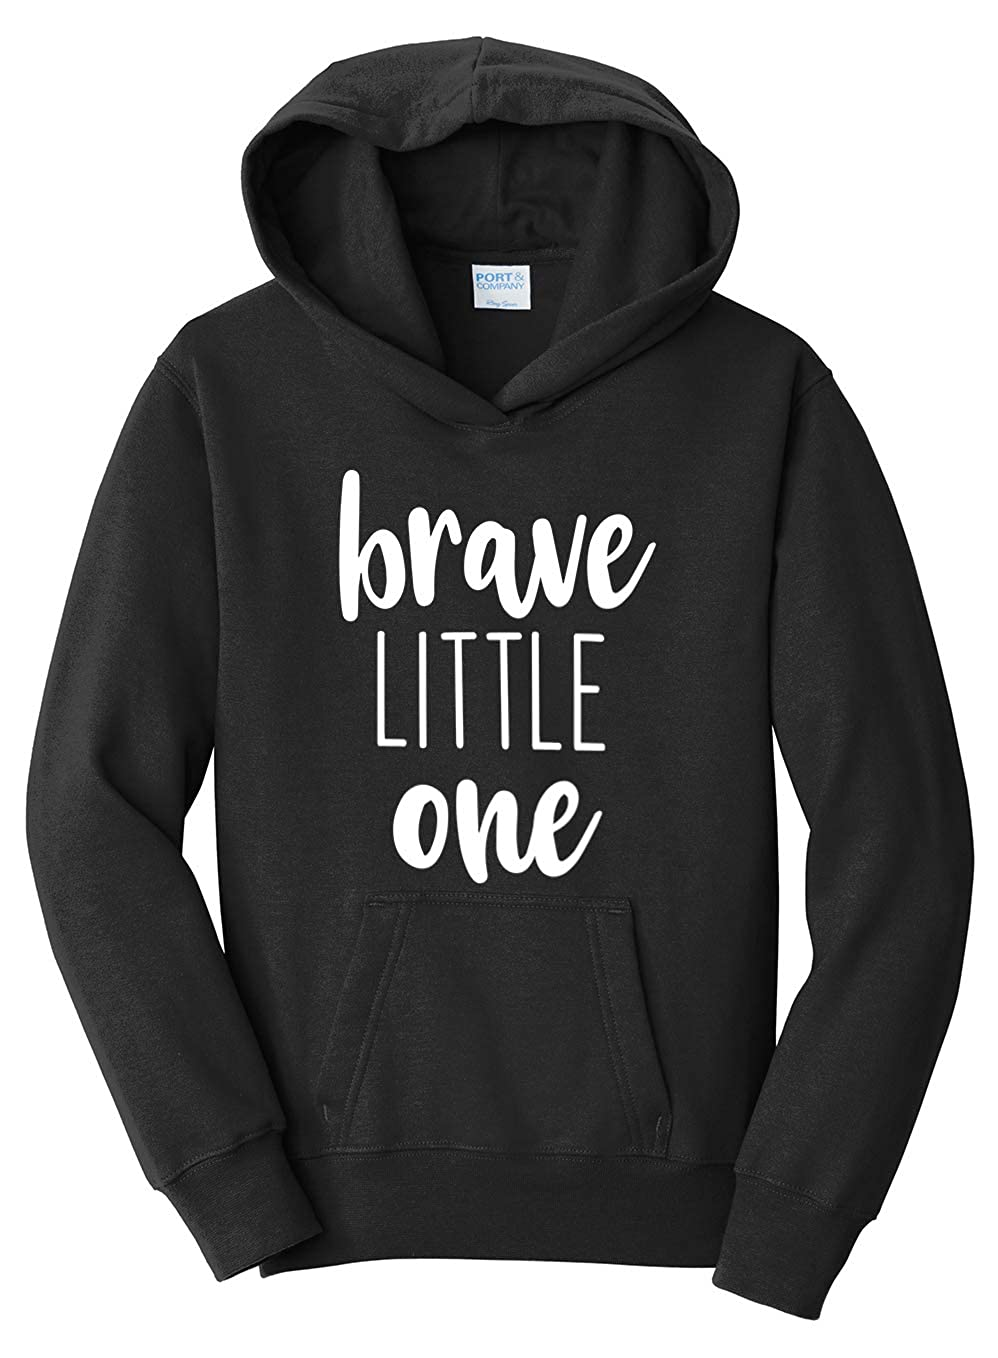 Tenacitee Girls Brave Little One Hooded Sweatshirt